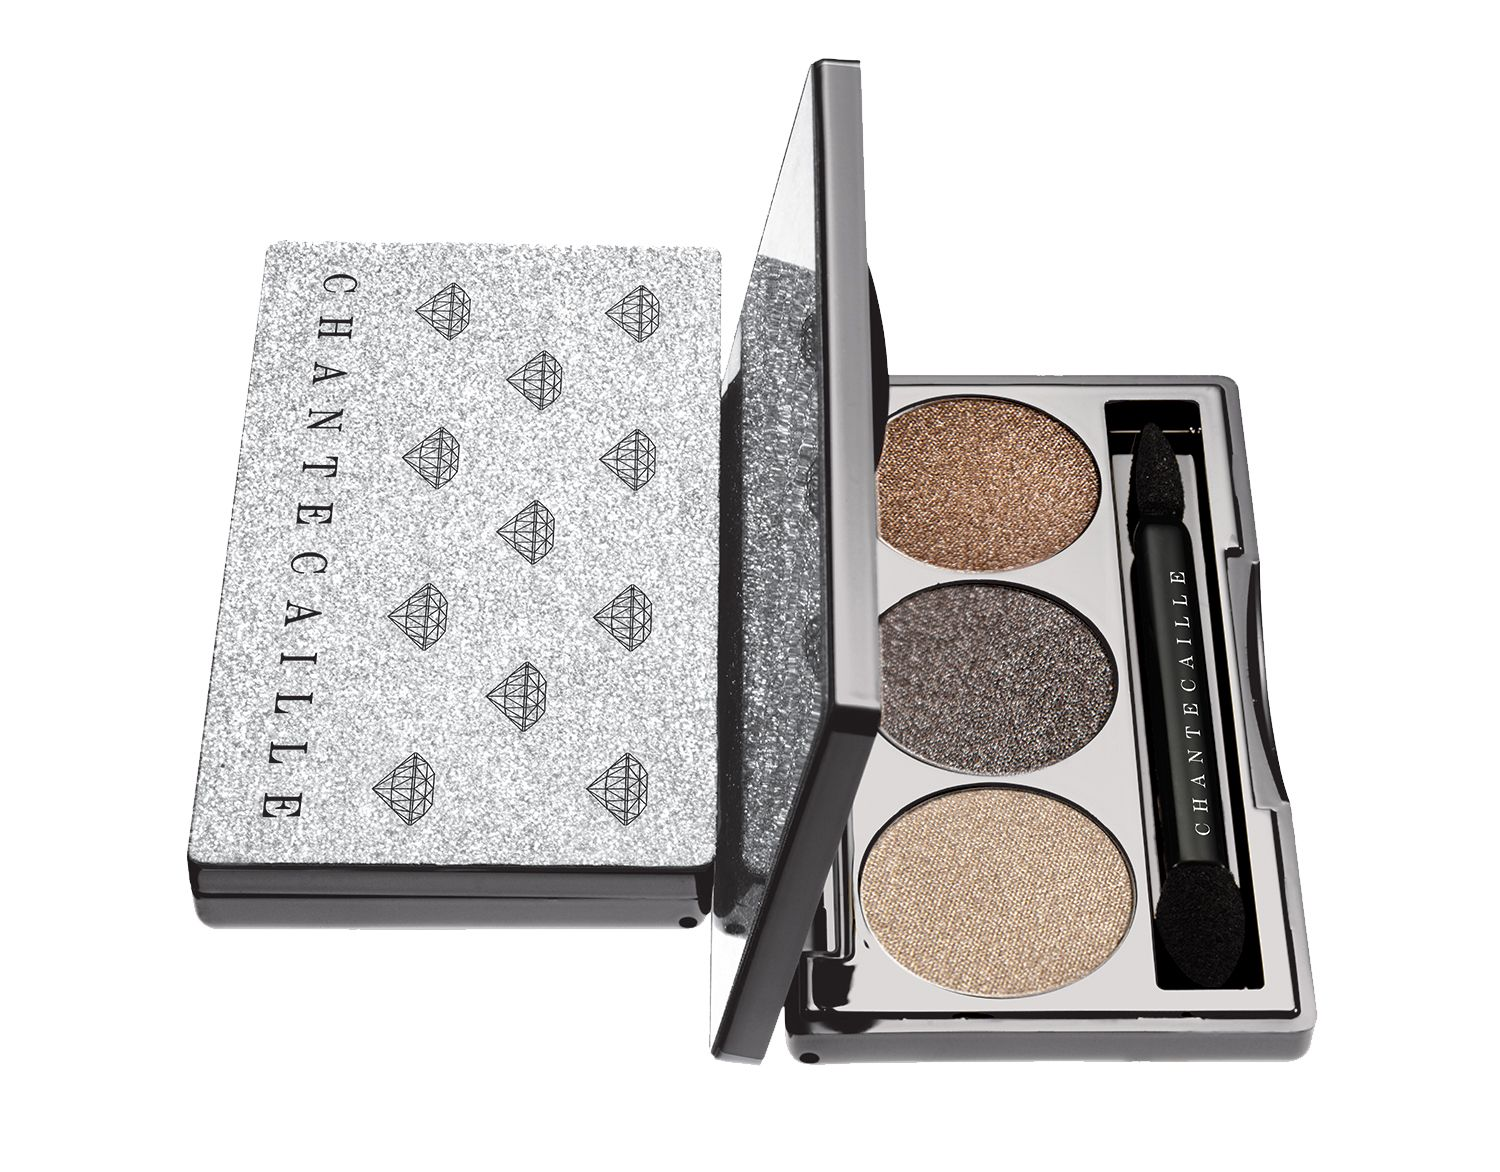 Gift Guide: Chantecaille The Diamonds Eyeshadow Trio